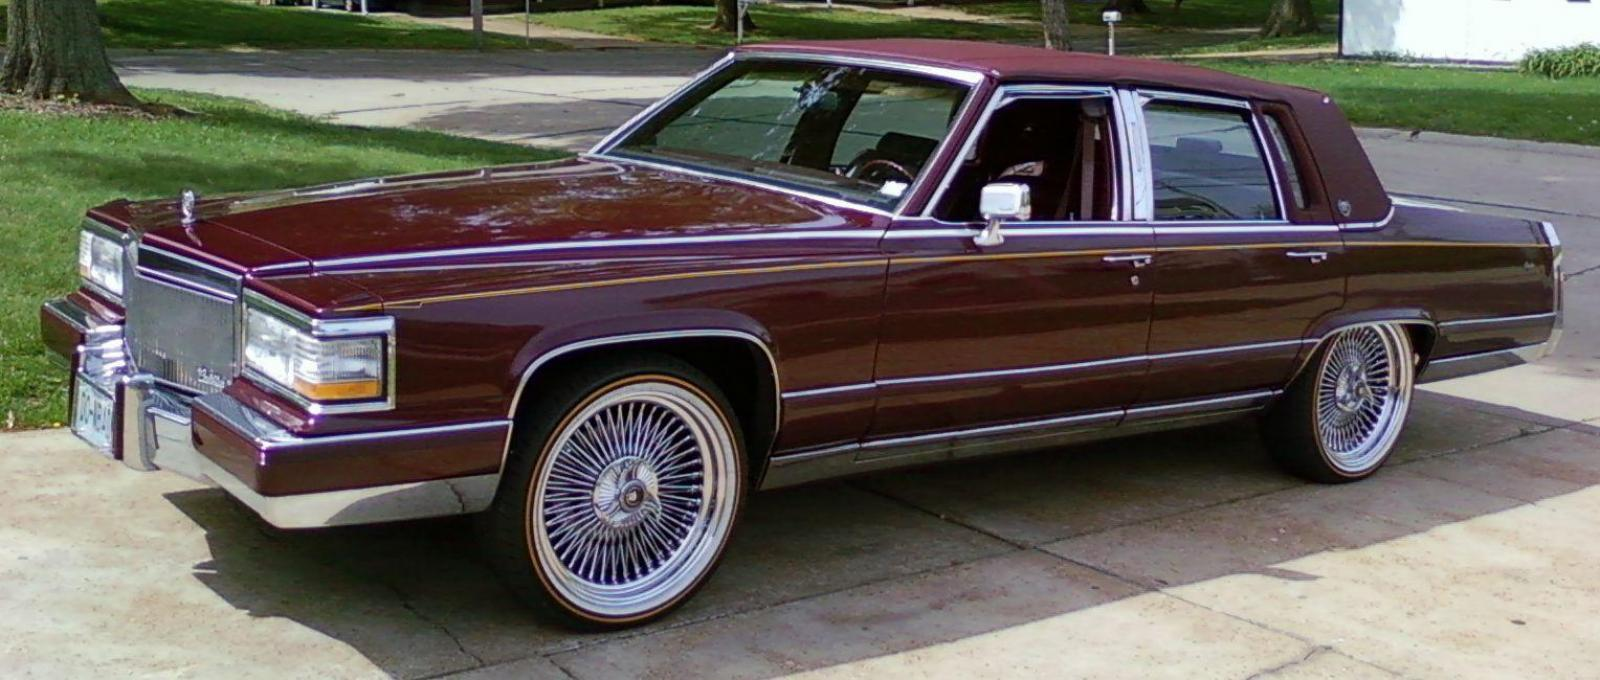 1990 Cadillac Brougham - Information and photos - Zomb Drive